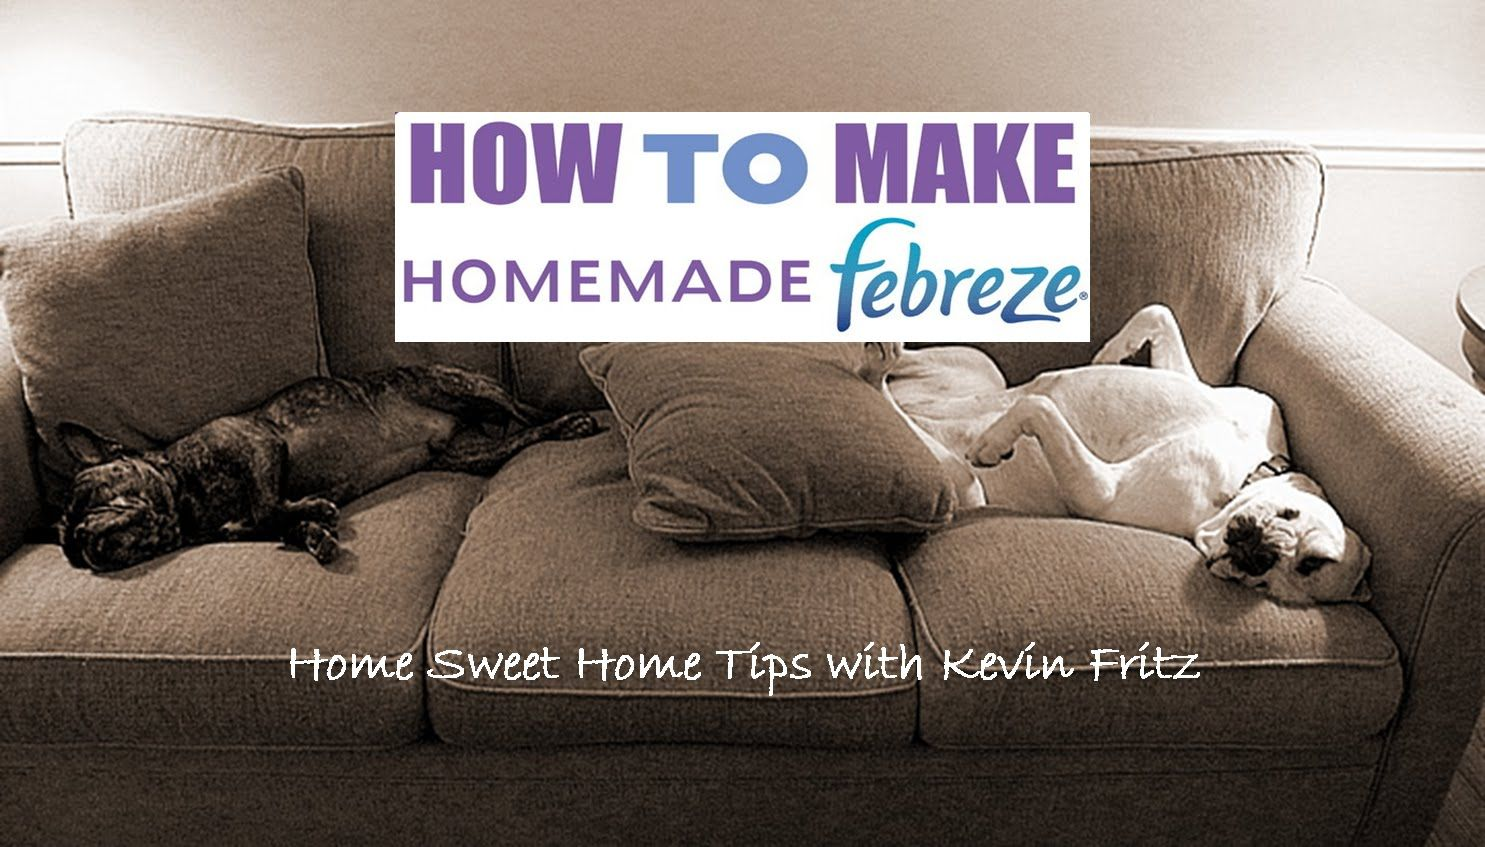 Make Your Home Fabric Freshener for Pennies (With images